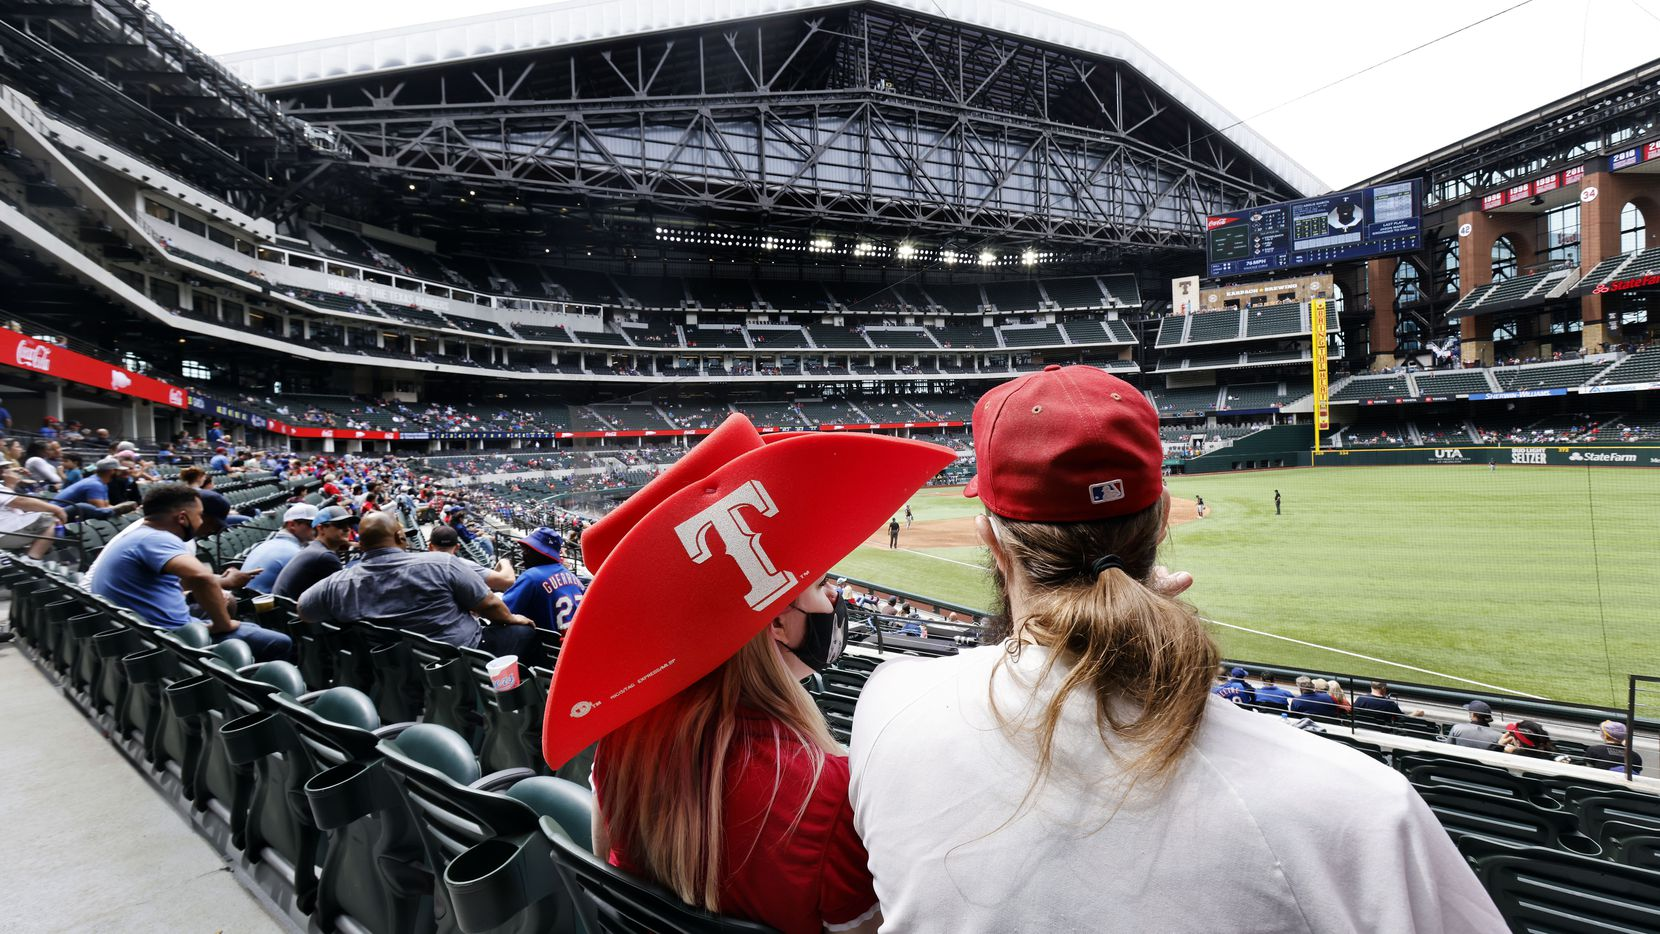 Texas Rangers fans take in an afternoon exhibition baseball game at Globe Life Field in Arlington, Texas. The Rangers were playing the Milwaukee Brewers, Tuesday, March 30, 2021.